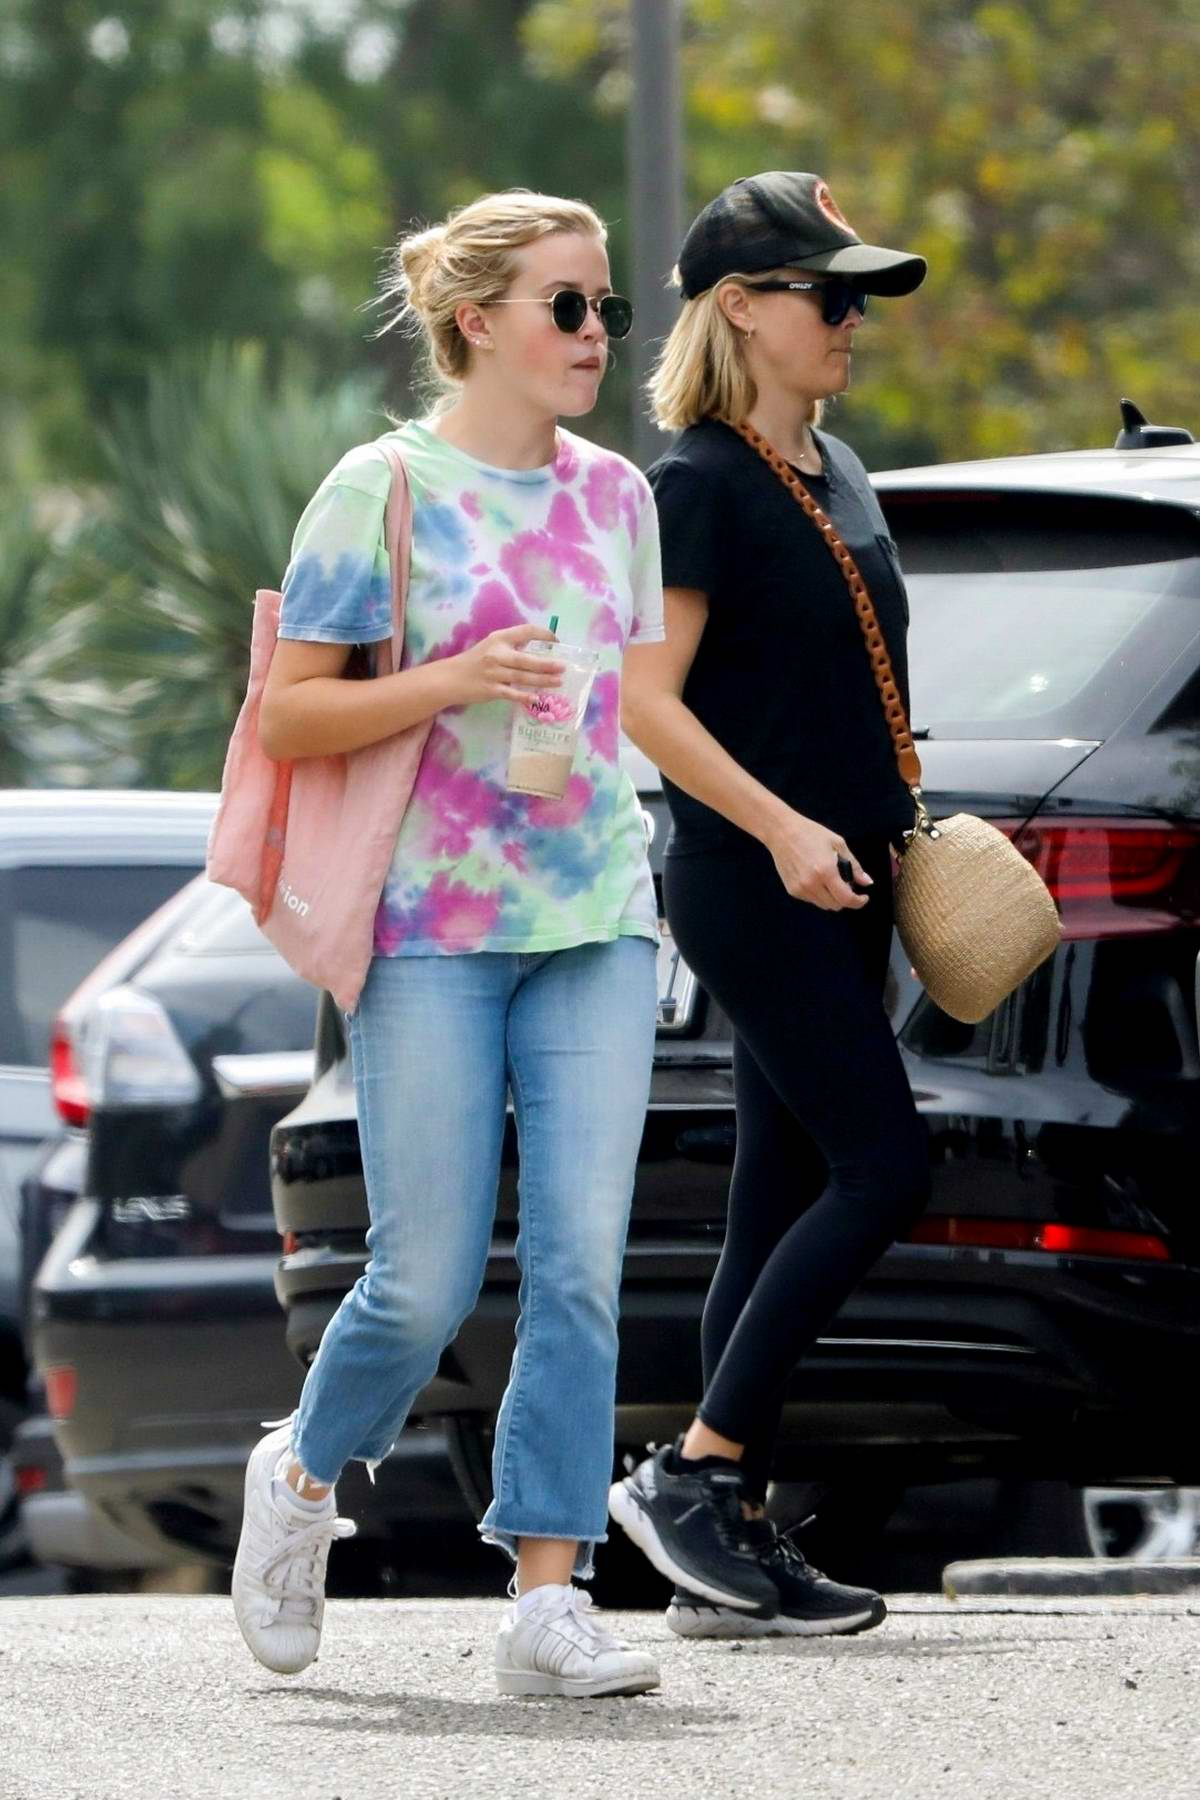 Ava Phillippe and Reese Witherspoon grabs breakfast at SunLife Organics in Malibu, California